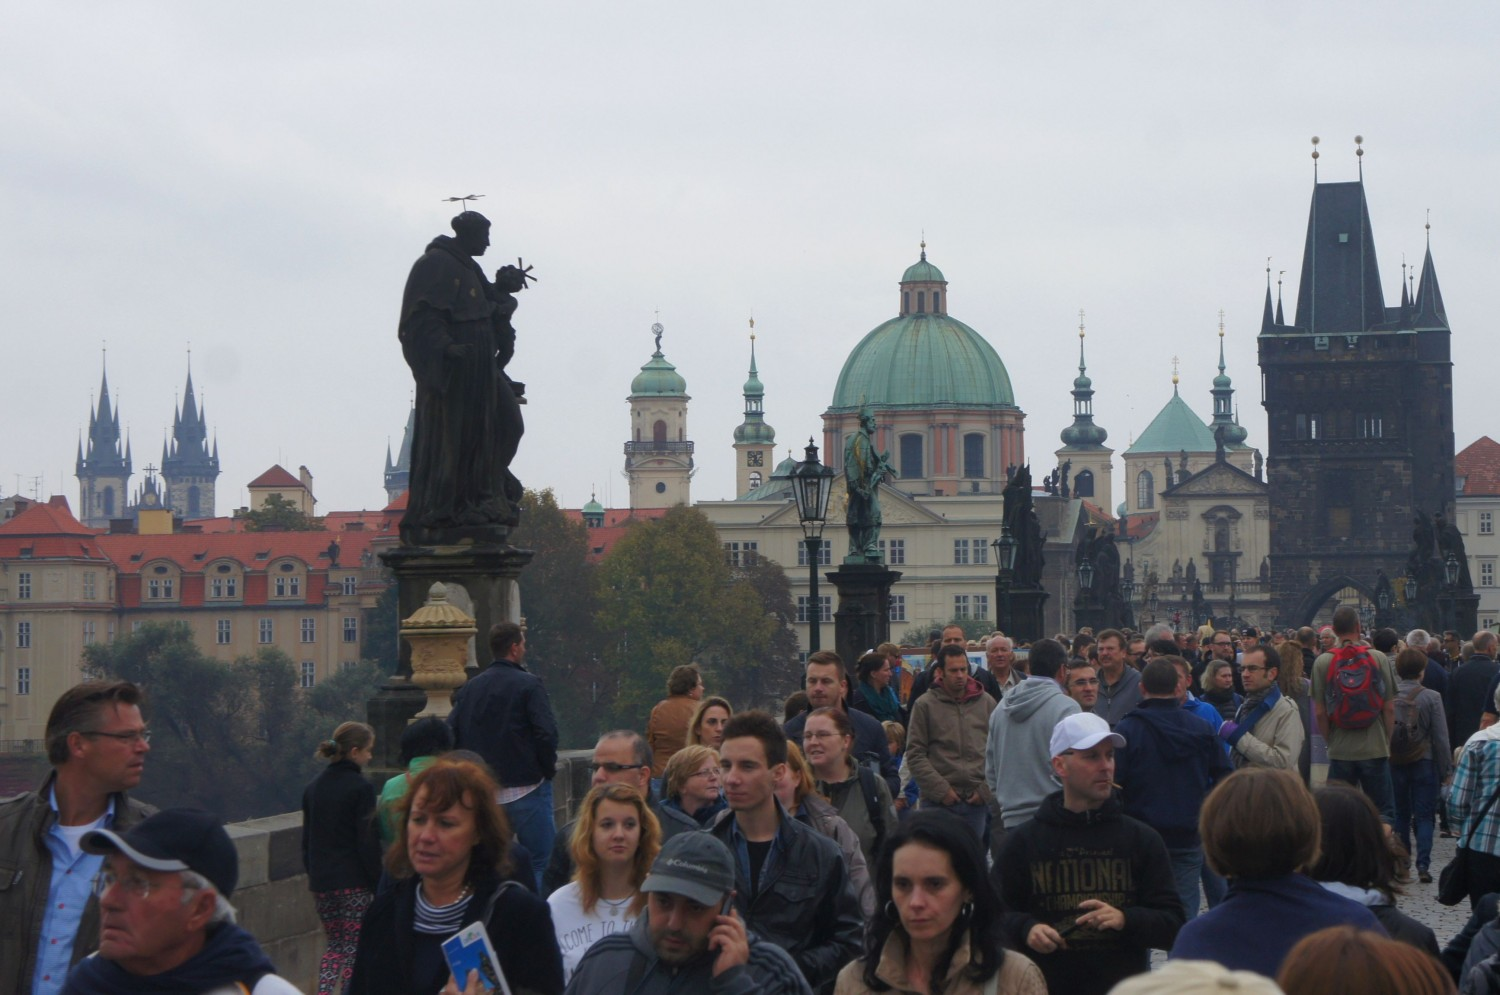 Prague tourist hordes on Charles Bridge - is it sustainable?